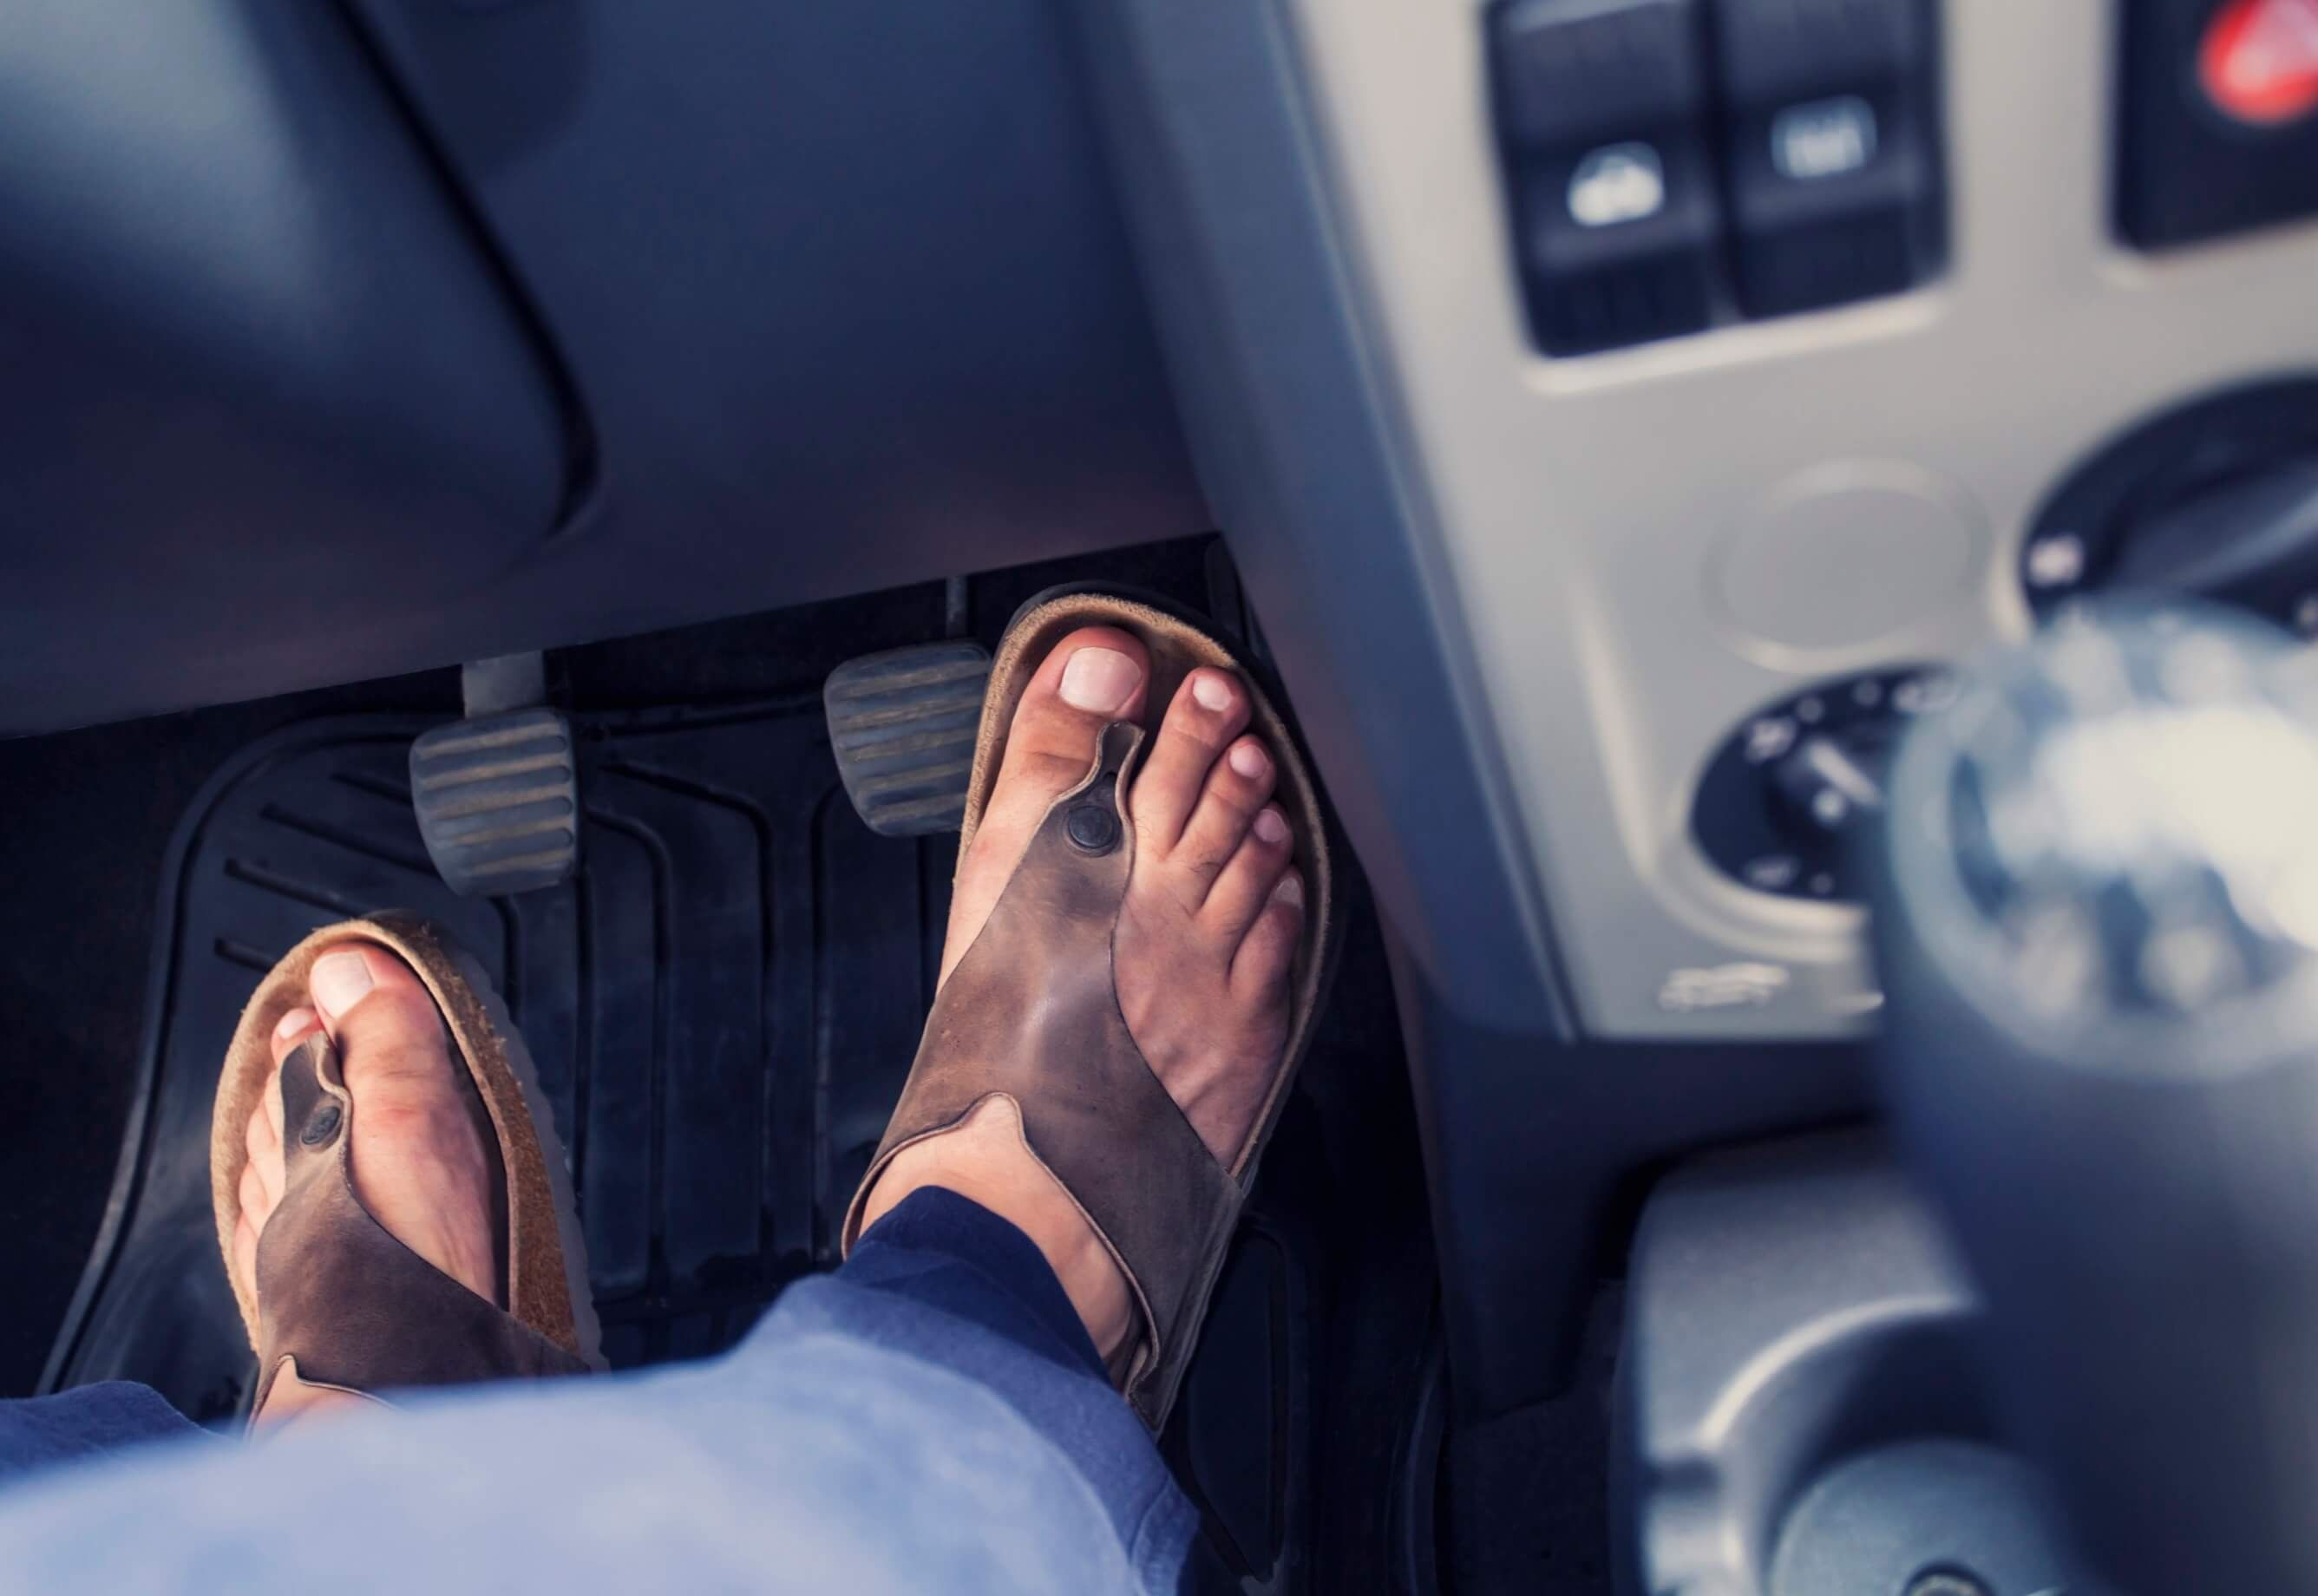 Driving while wearing flip flops